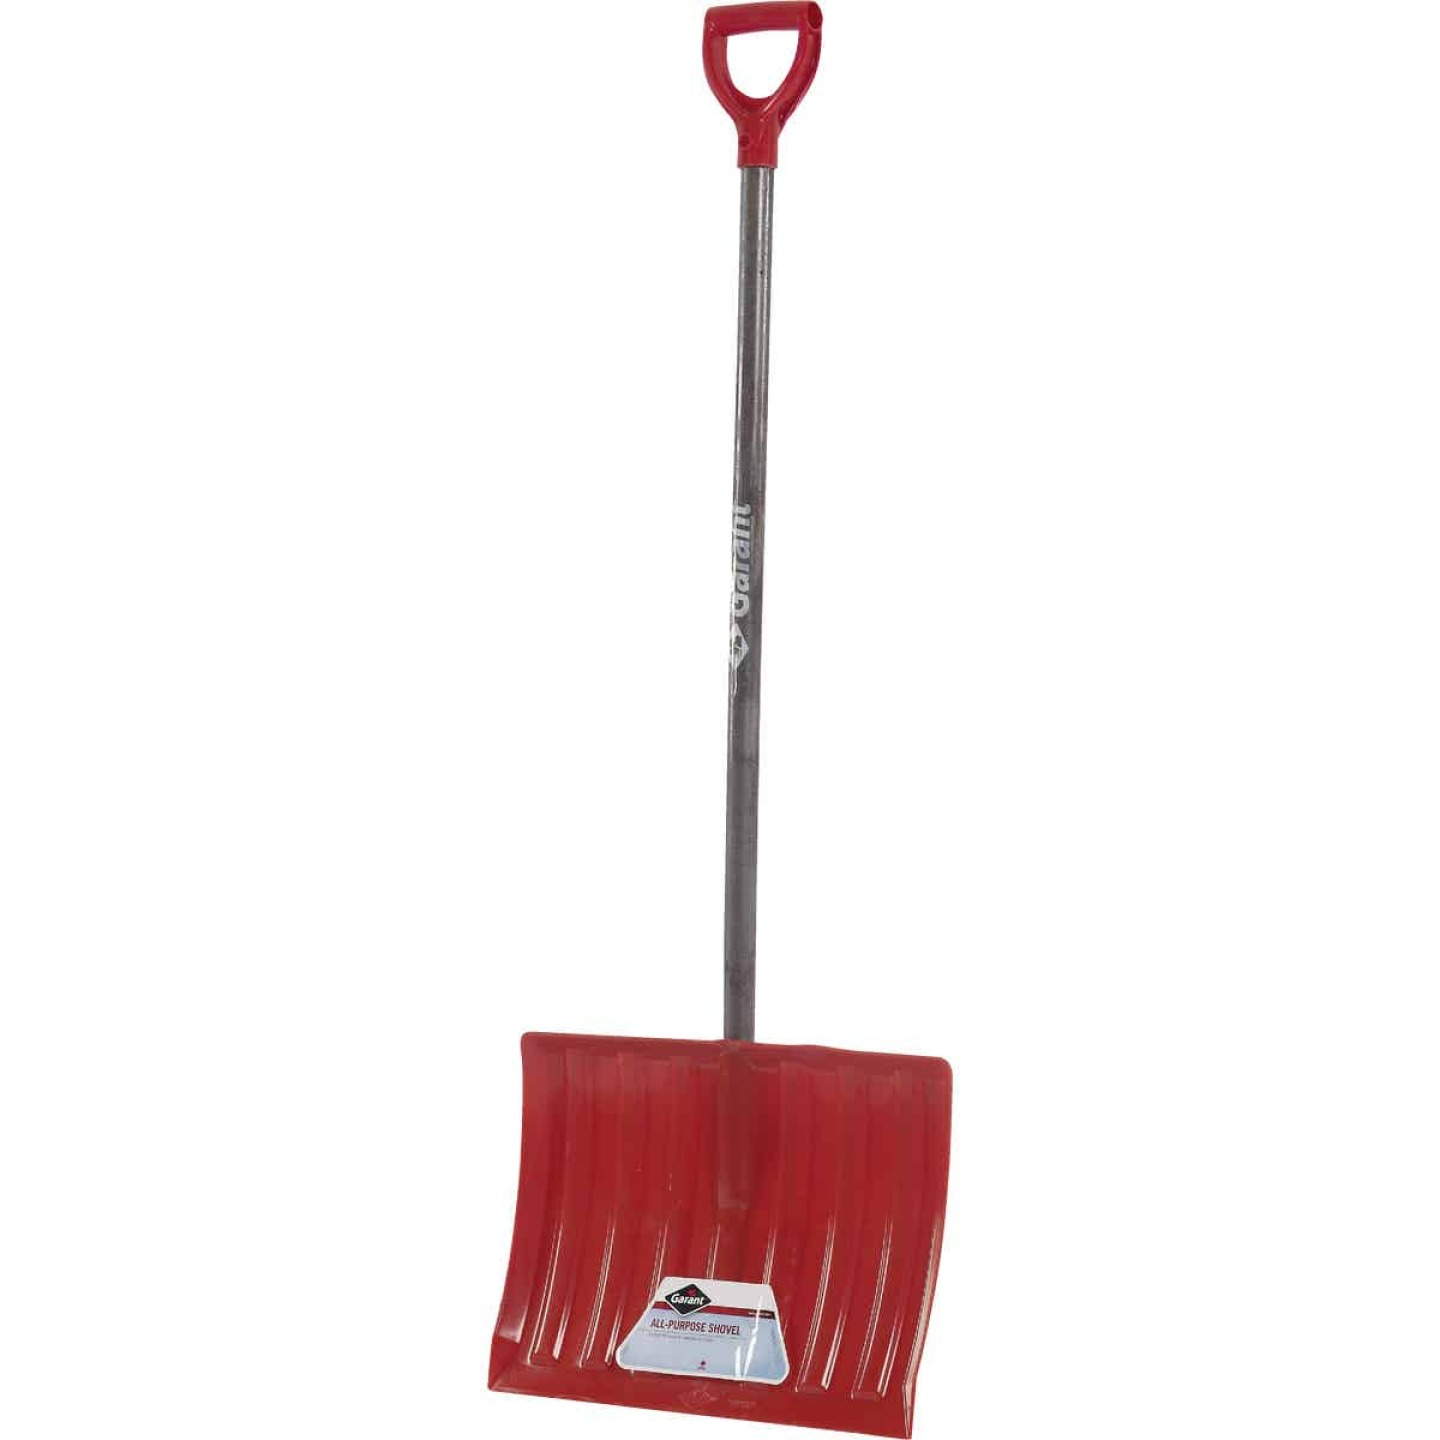 Garant Nordic 18 In. Poly Snow Shovel with 42.25 In. Wood Handle Image 1